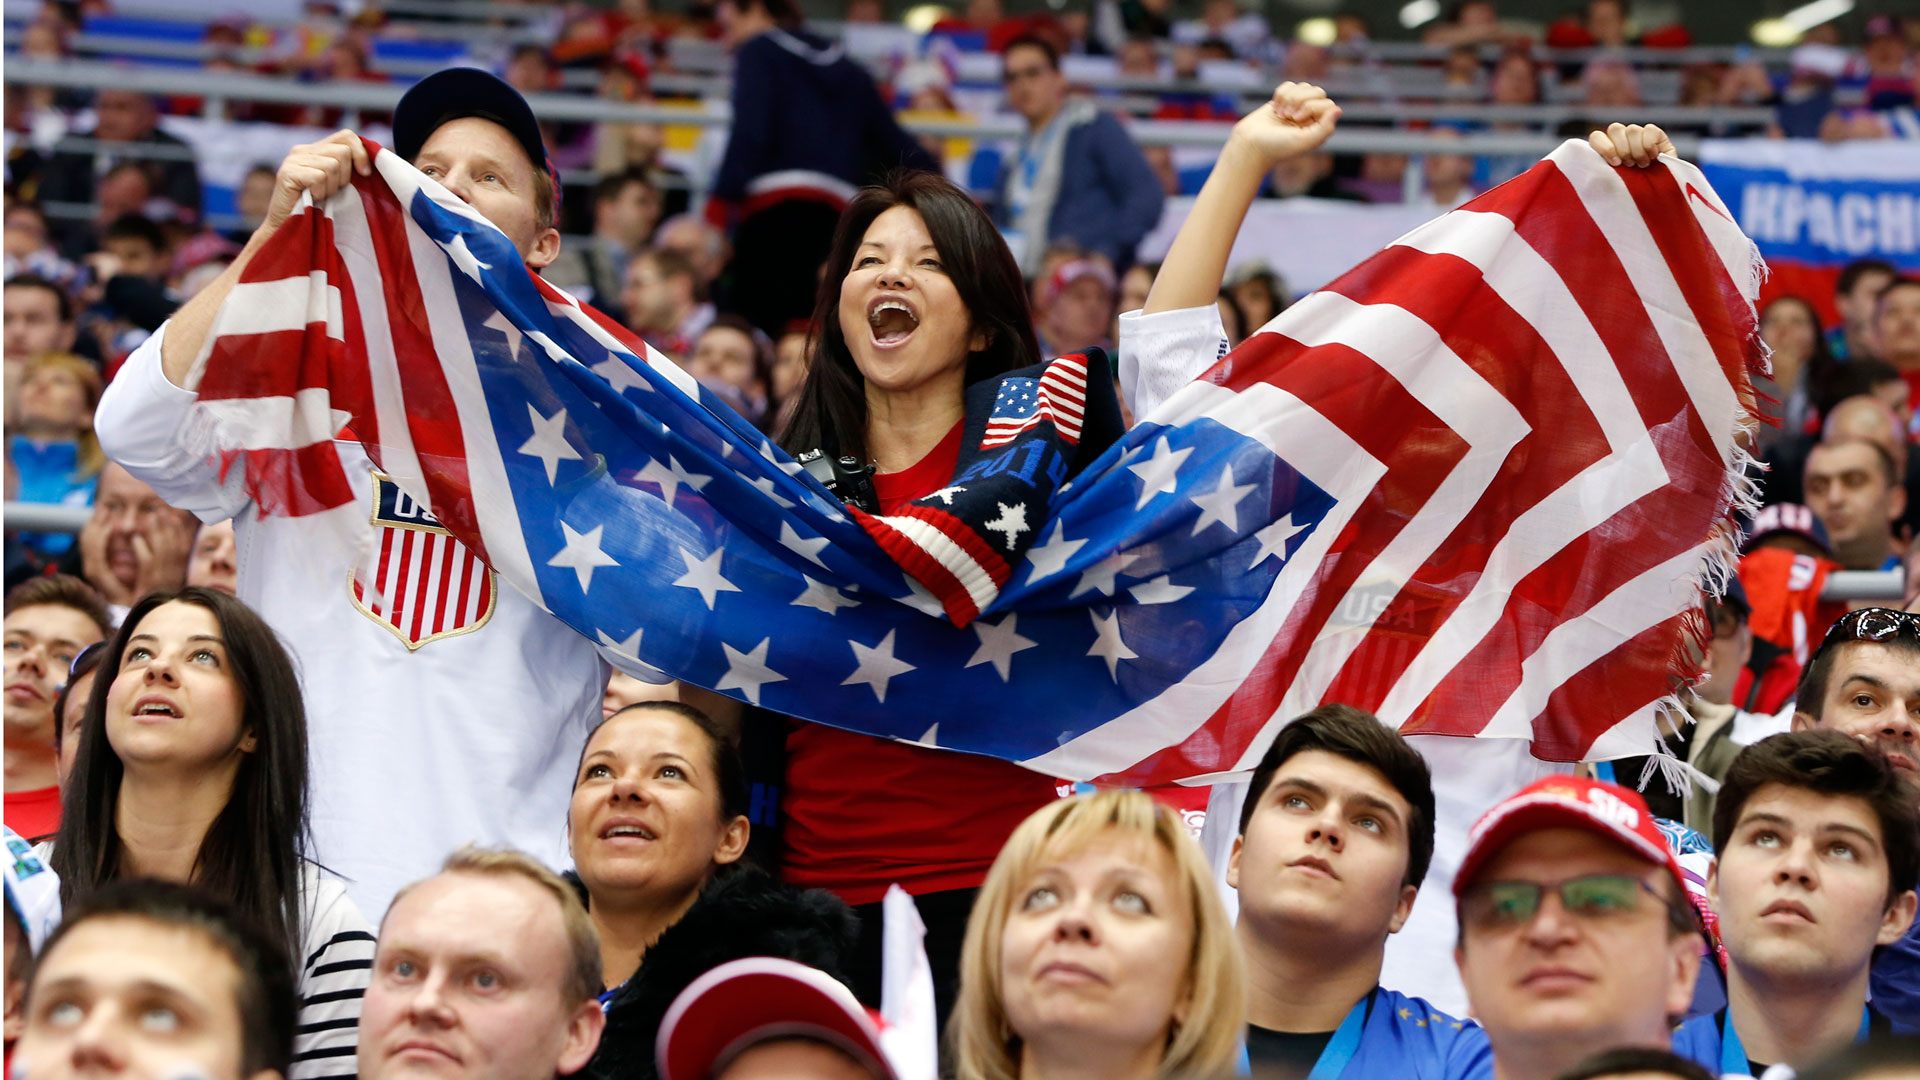 USA-hockey-fans-FTR-21714